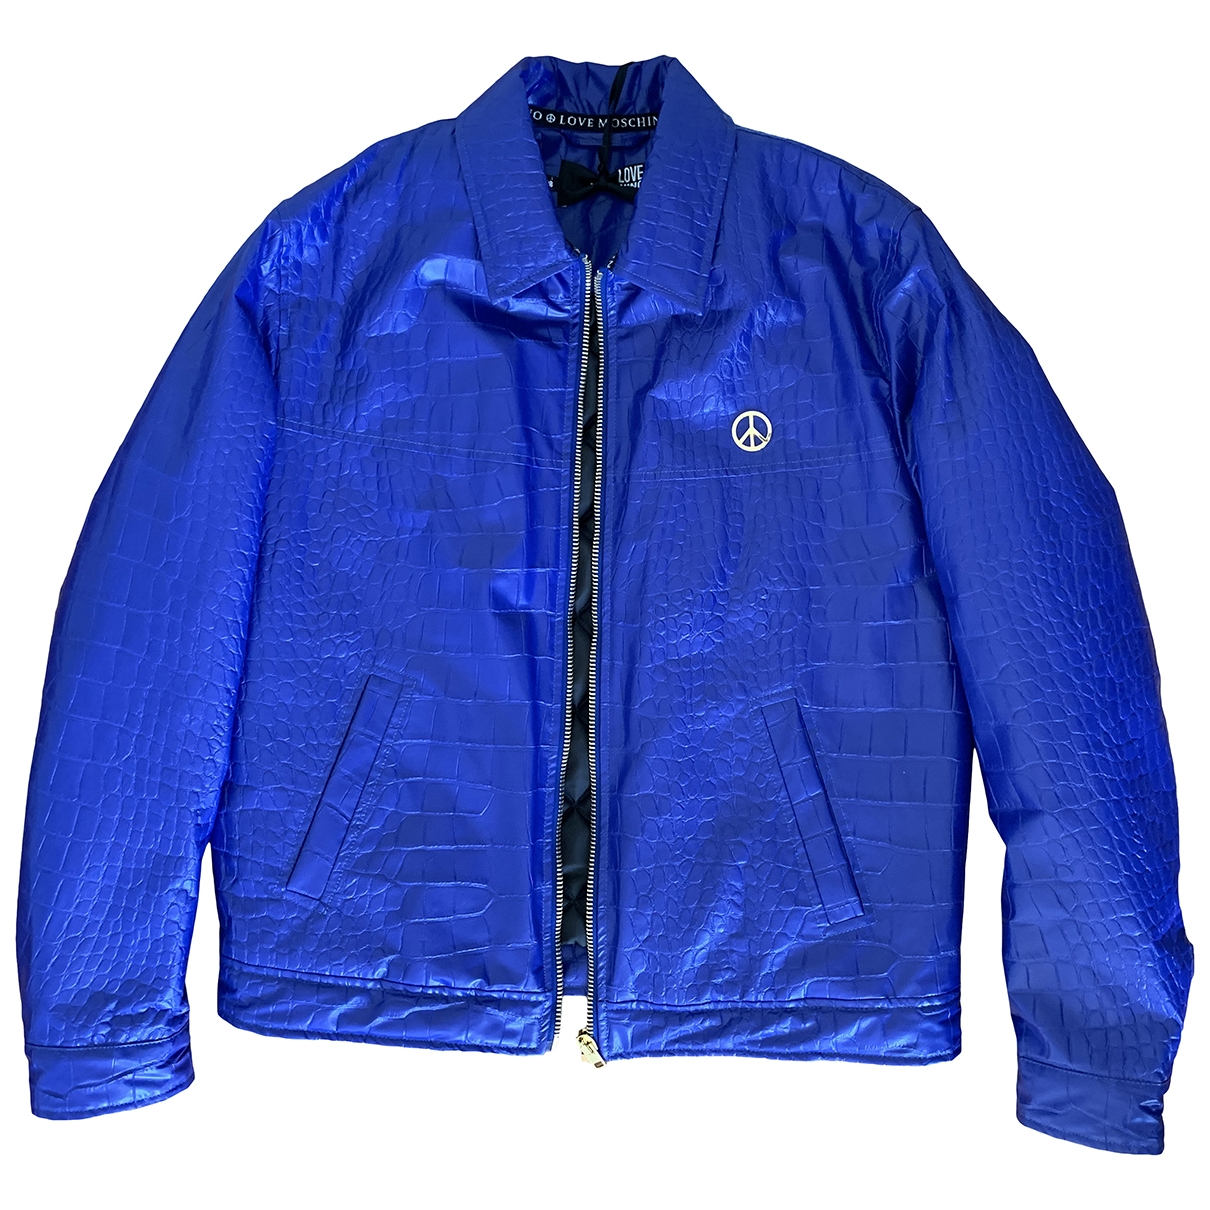 Moschino Love \N Blue jacket  for Men 48 IT